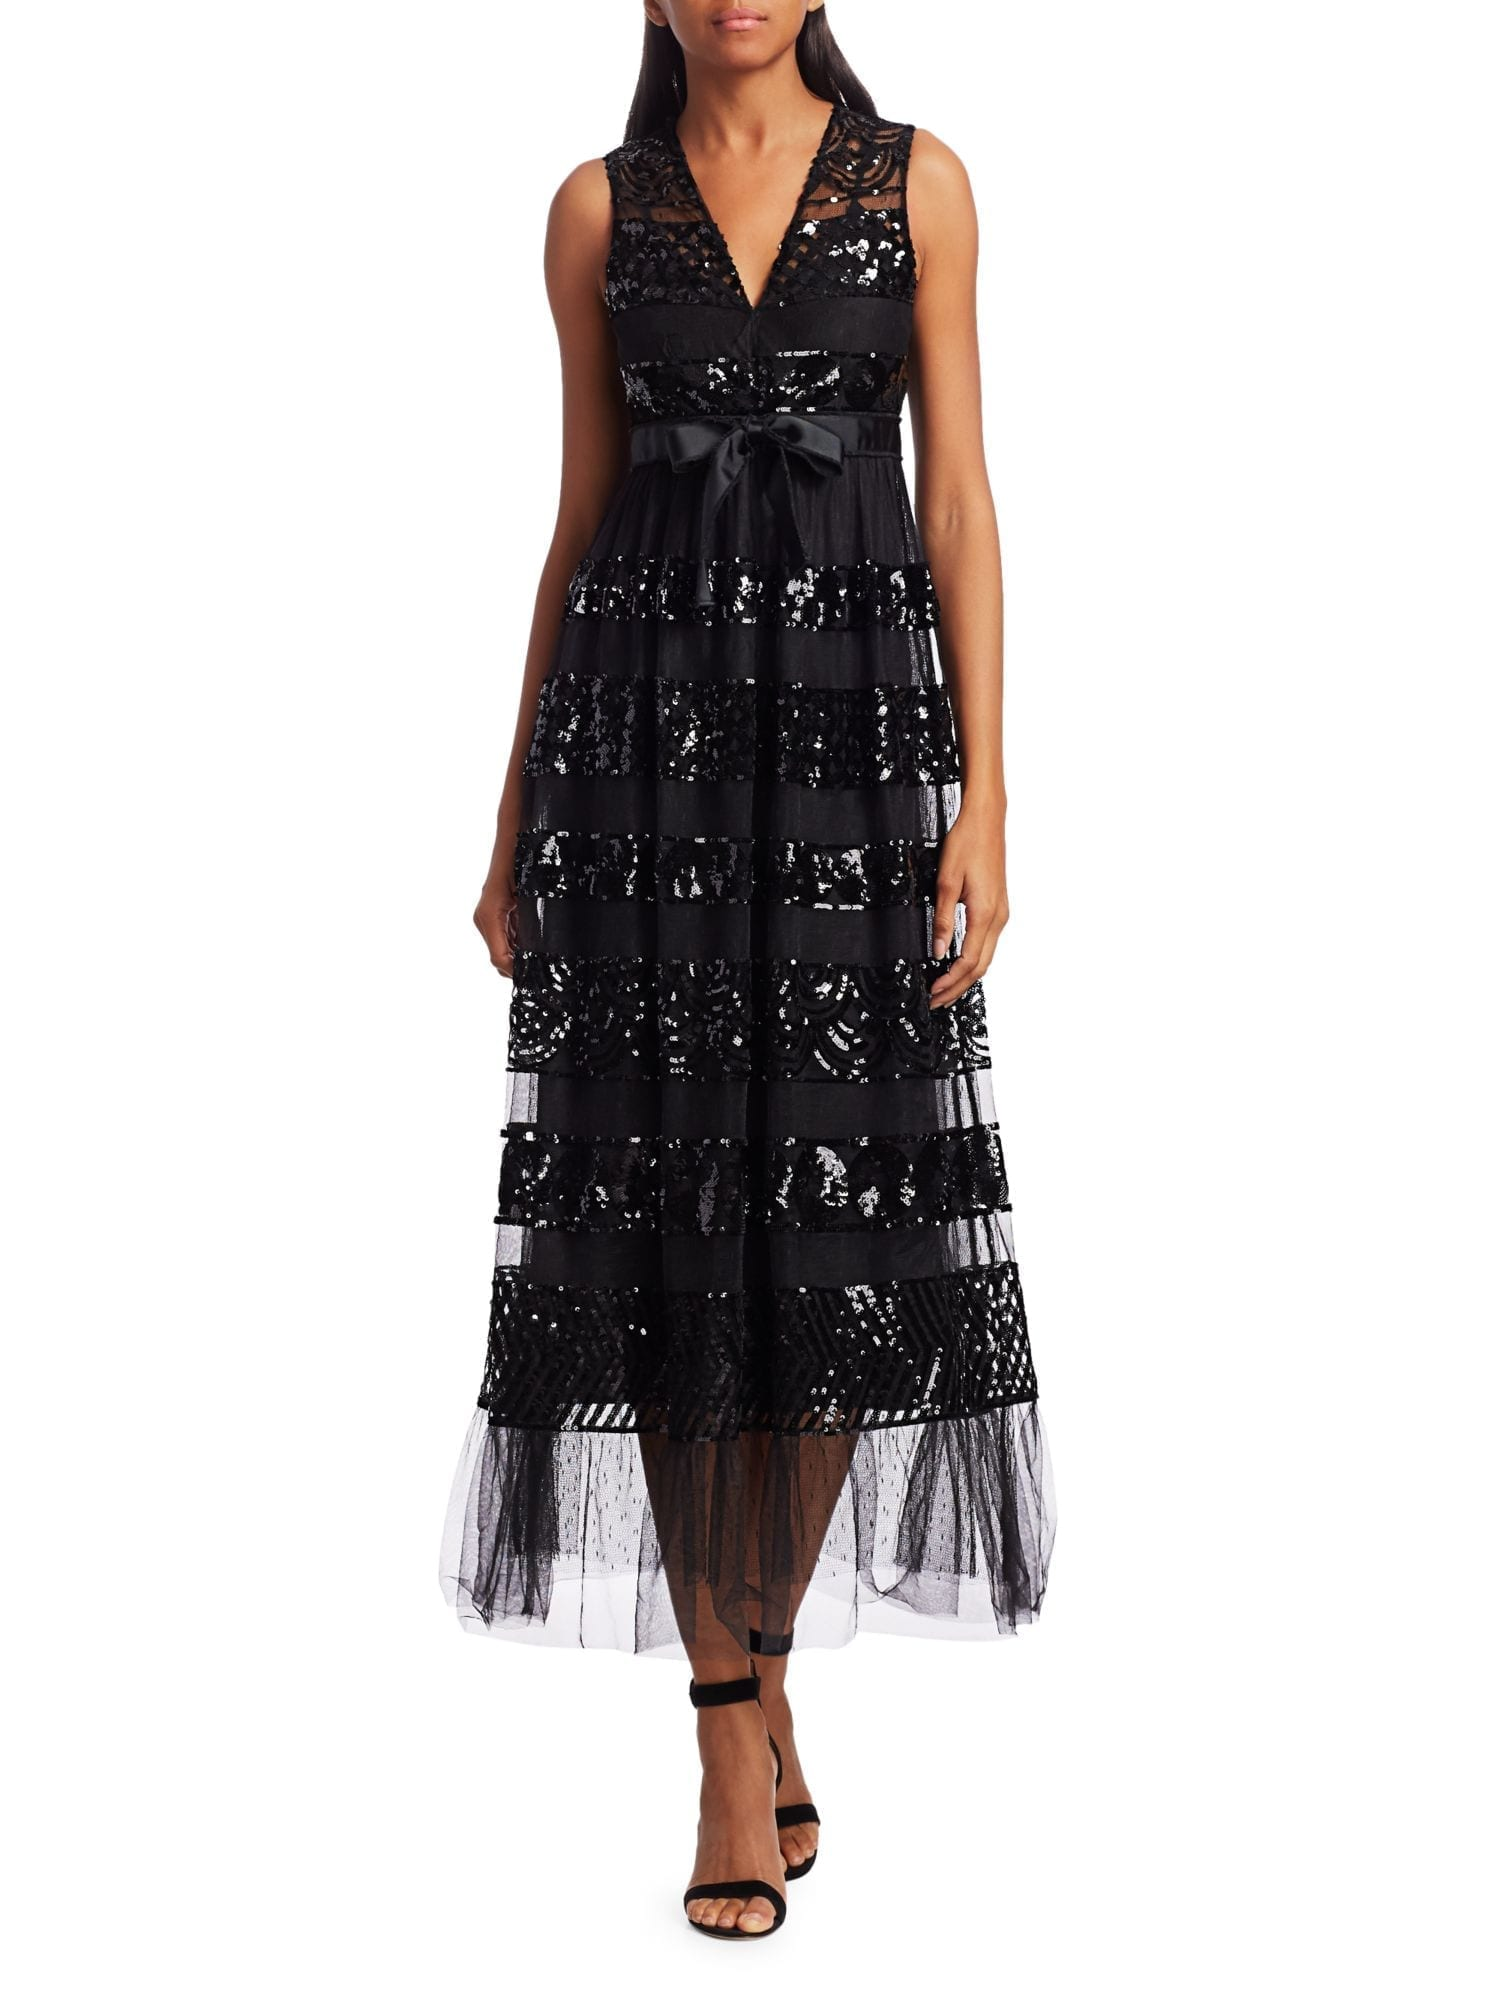 REDVALENTINO Sequin Tiered Tulle Dress